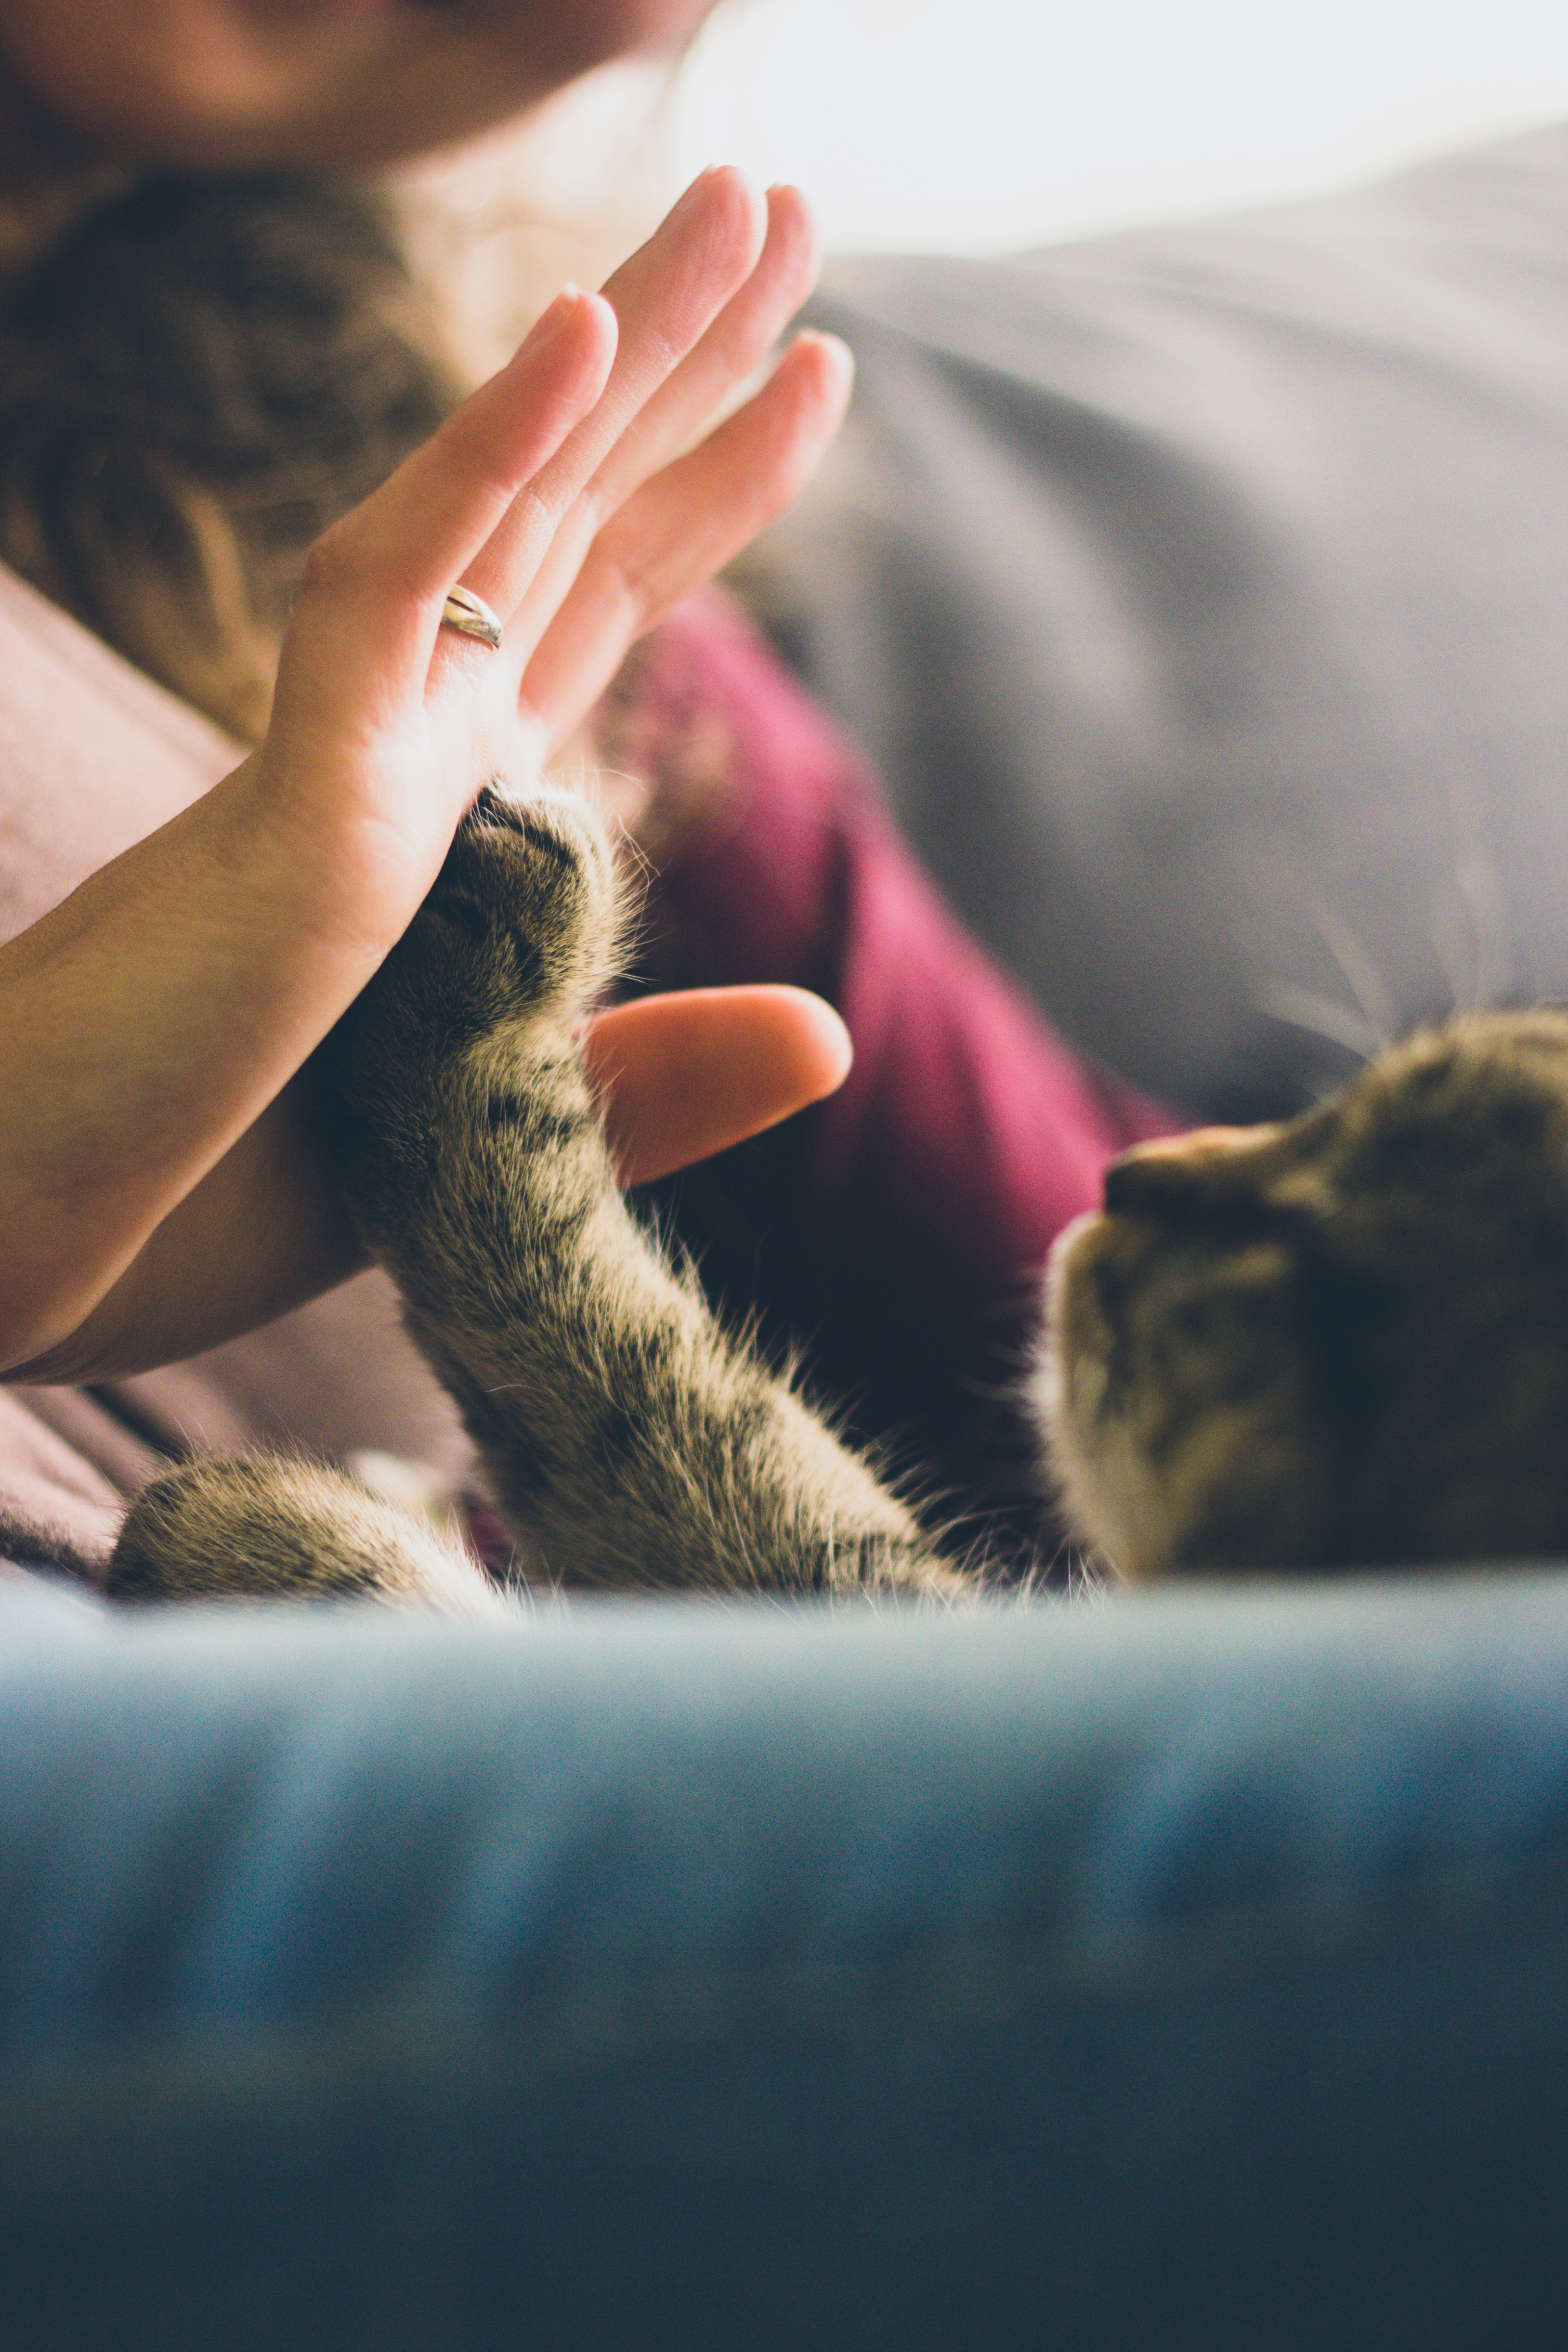 7 facts that everyone with ailurophobia wants you to know